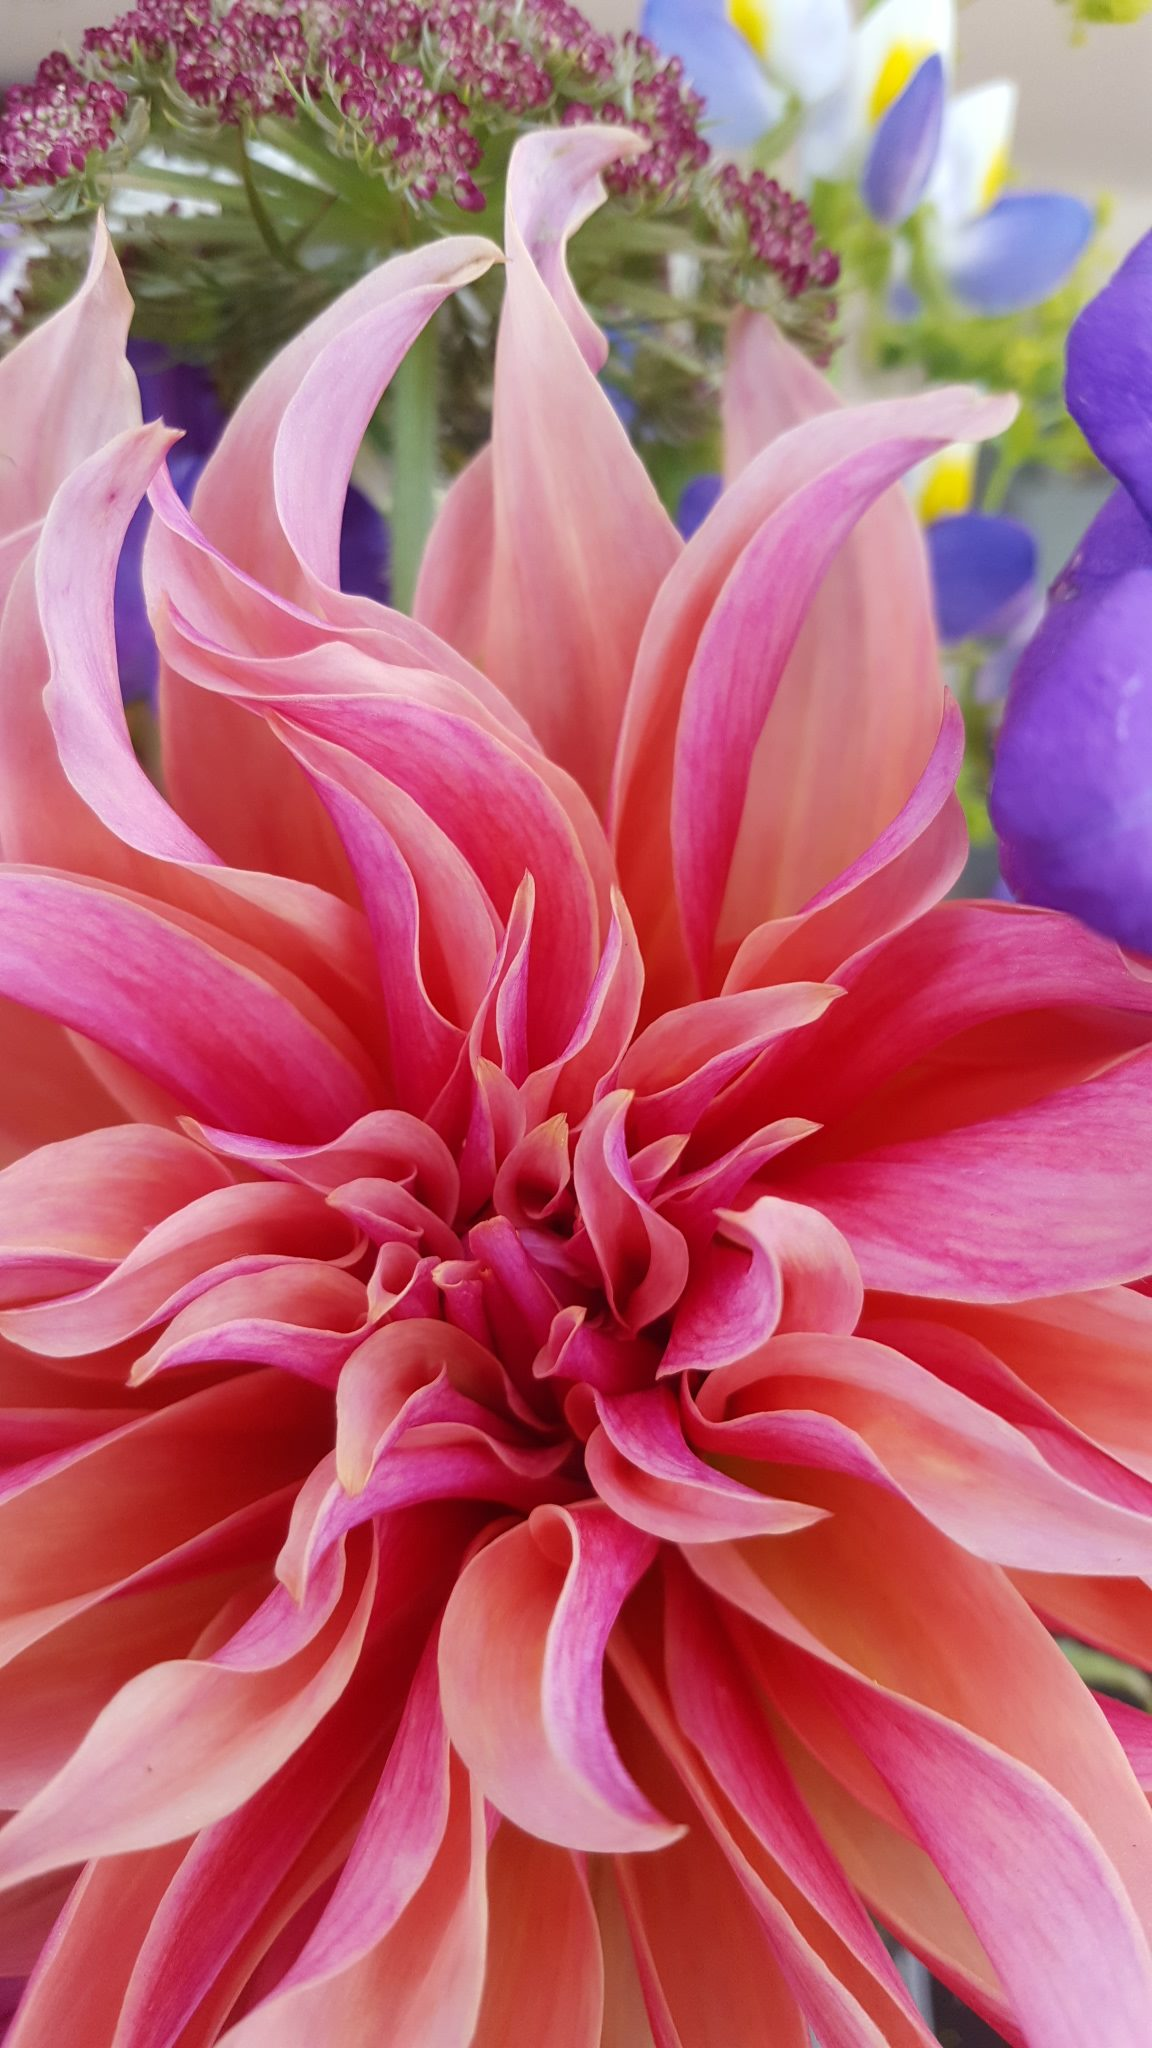 Dahlia Labyrinth - up close